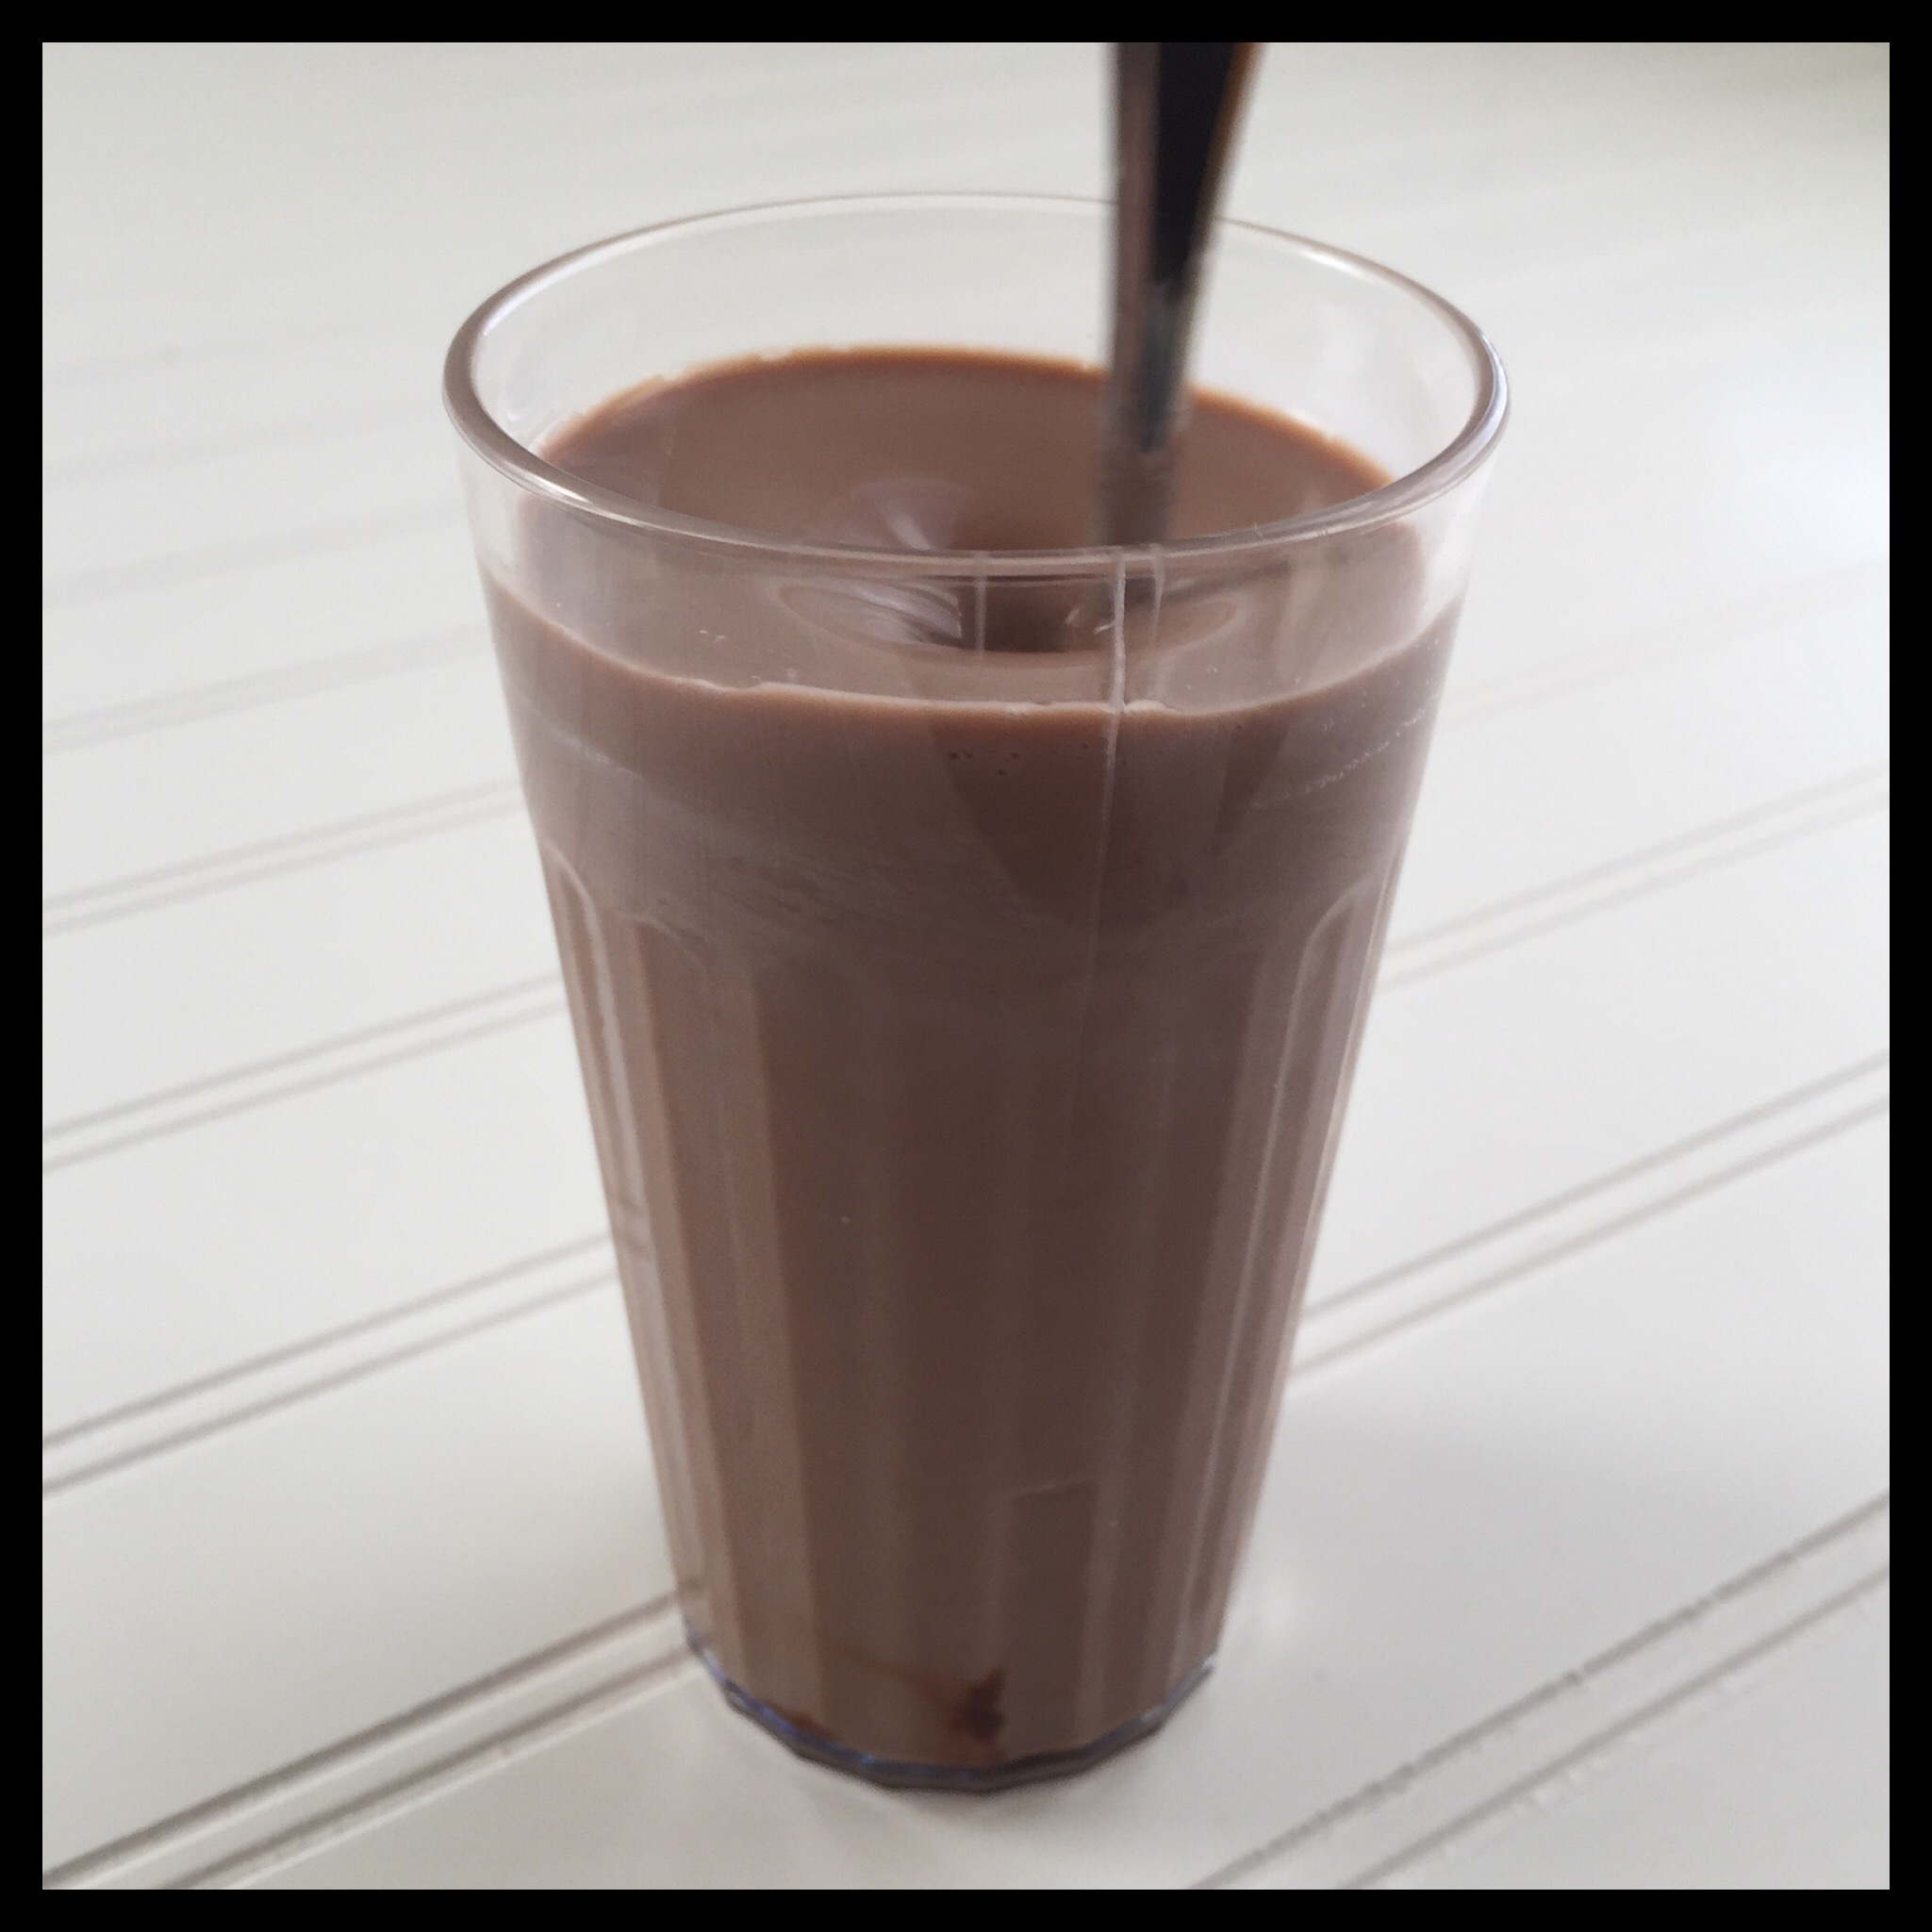 How To Make Chocolate Syrup From Unsweetened Cocoa Powder